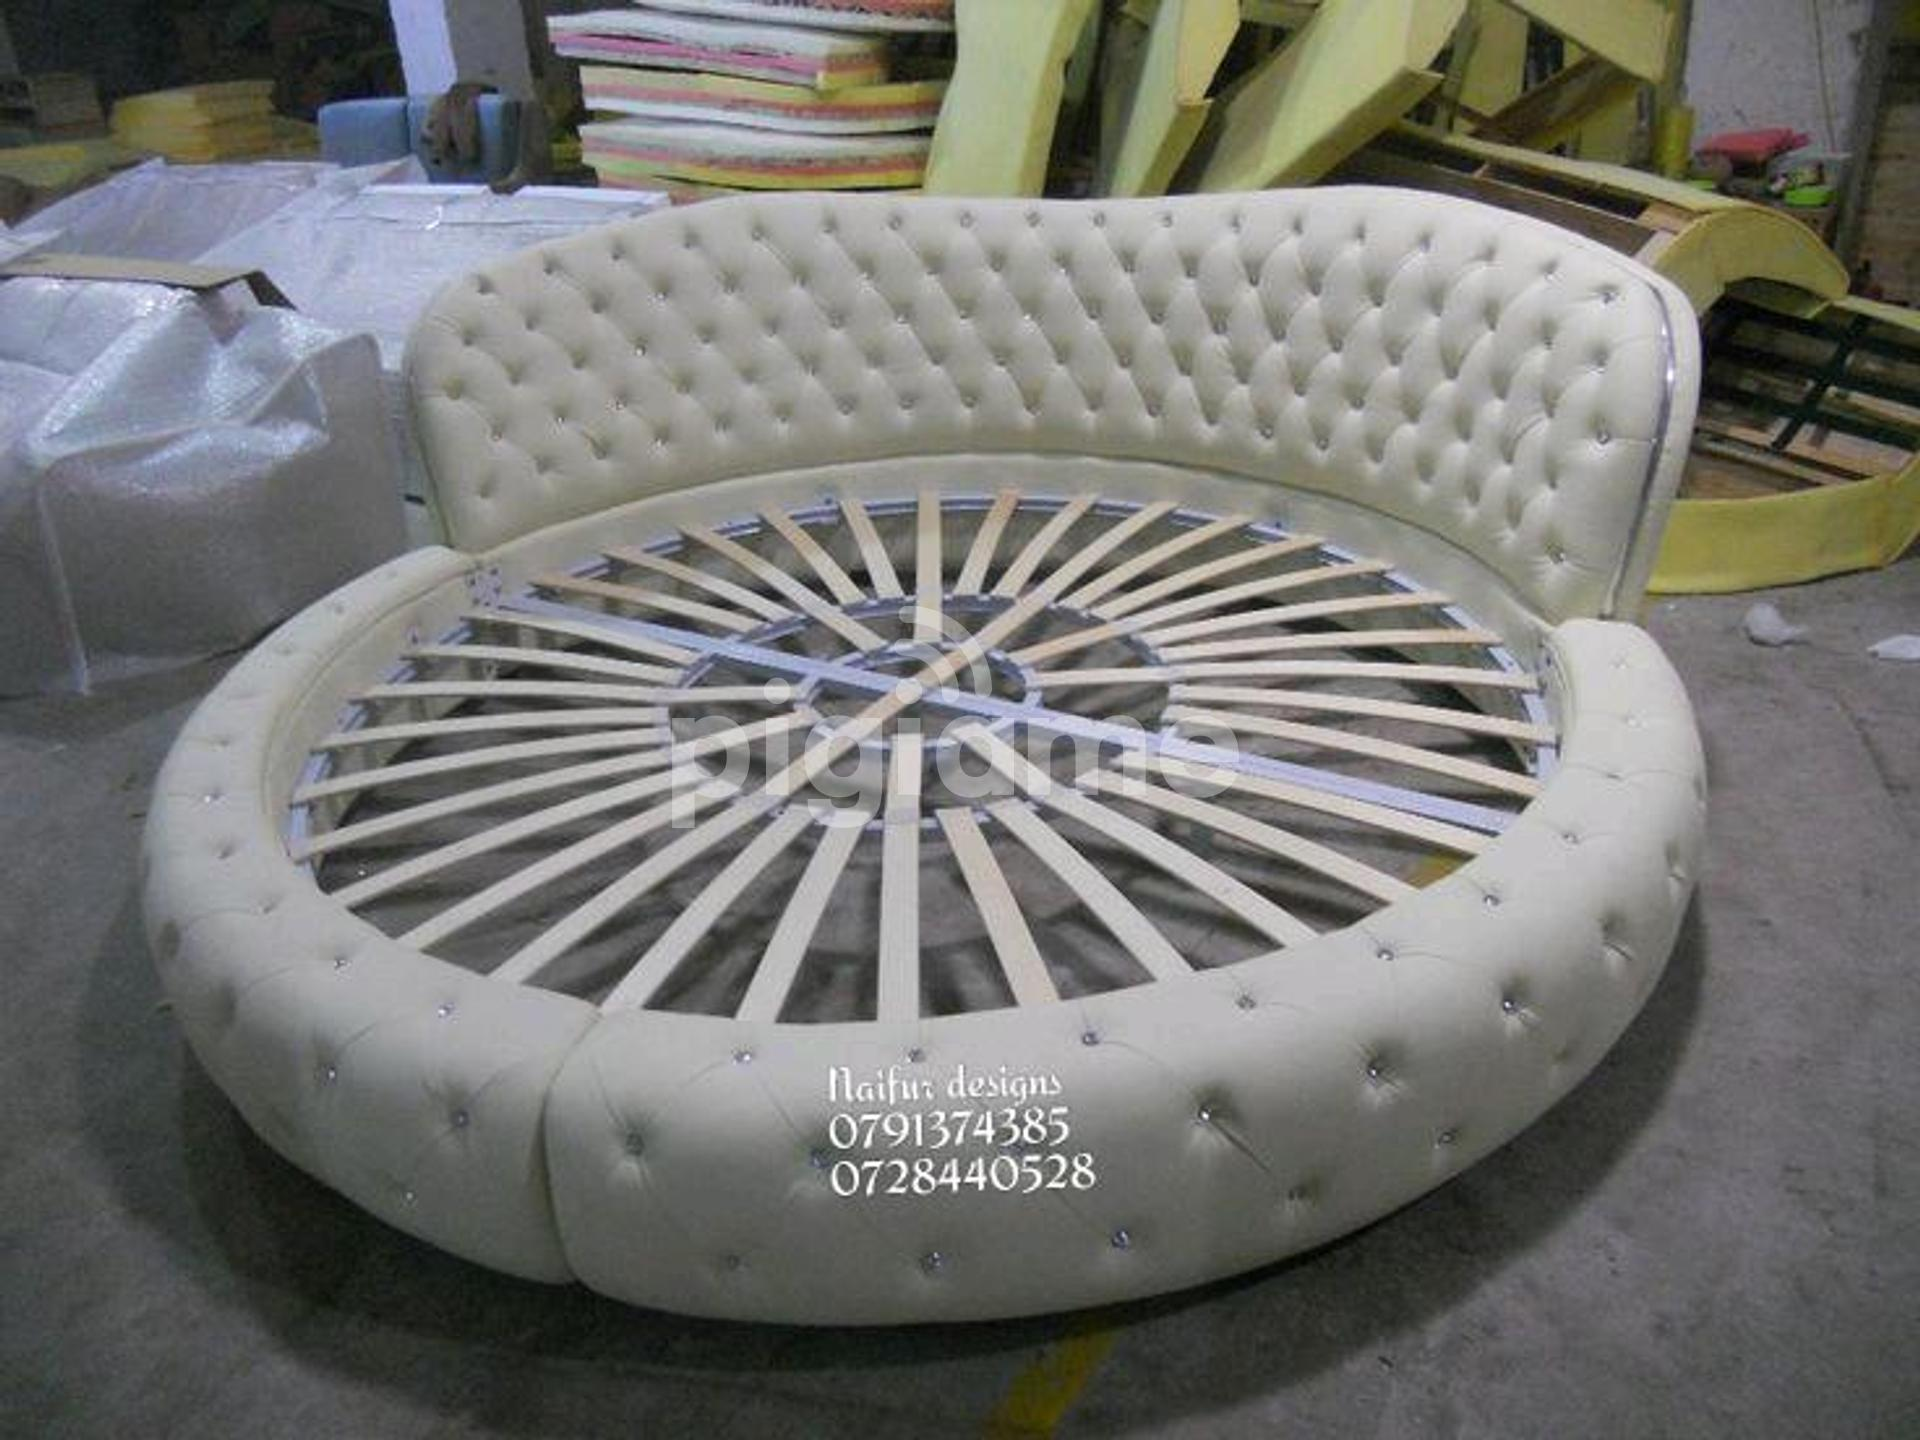 Modern Round Bed Designs Tufted Beds Customized Beds In Nairobi Pigiame